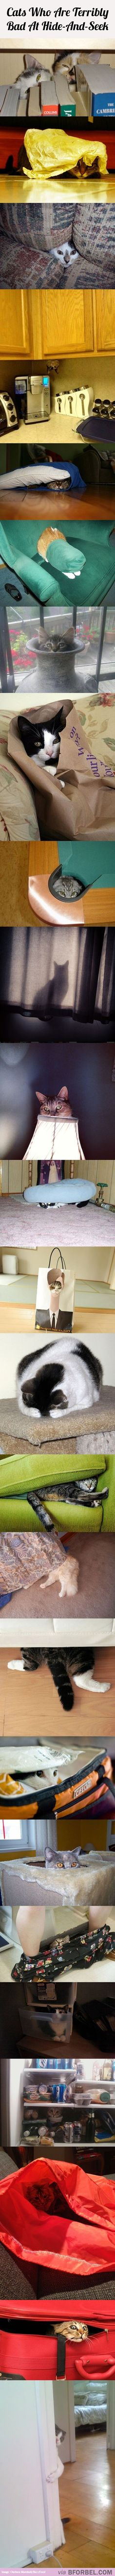 25 Cats Who Are Terribly Bad At Hide-And-Seek…